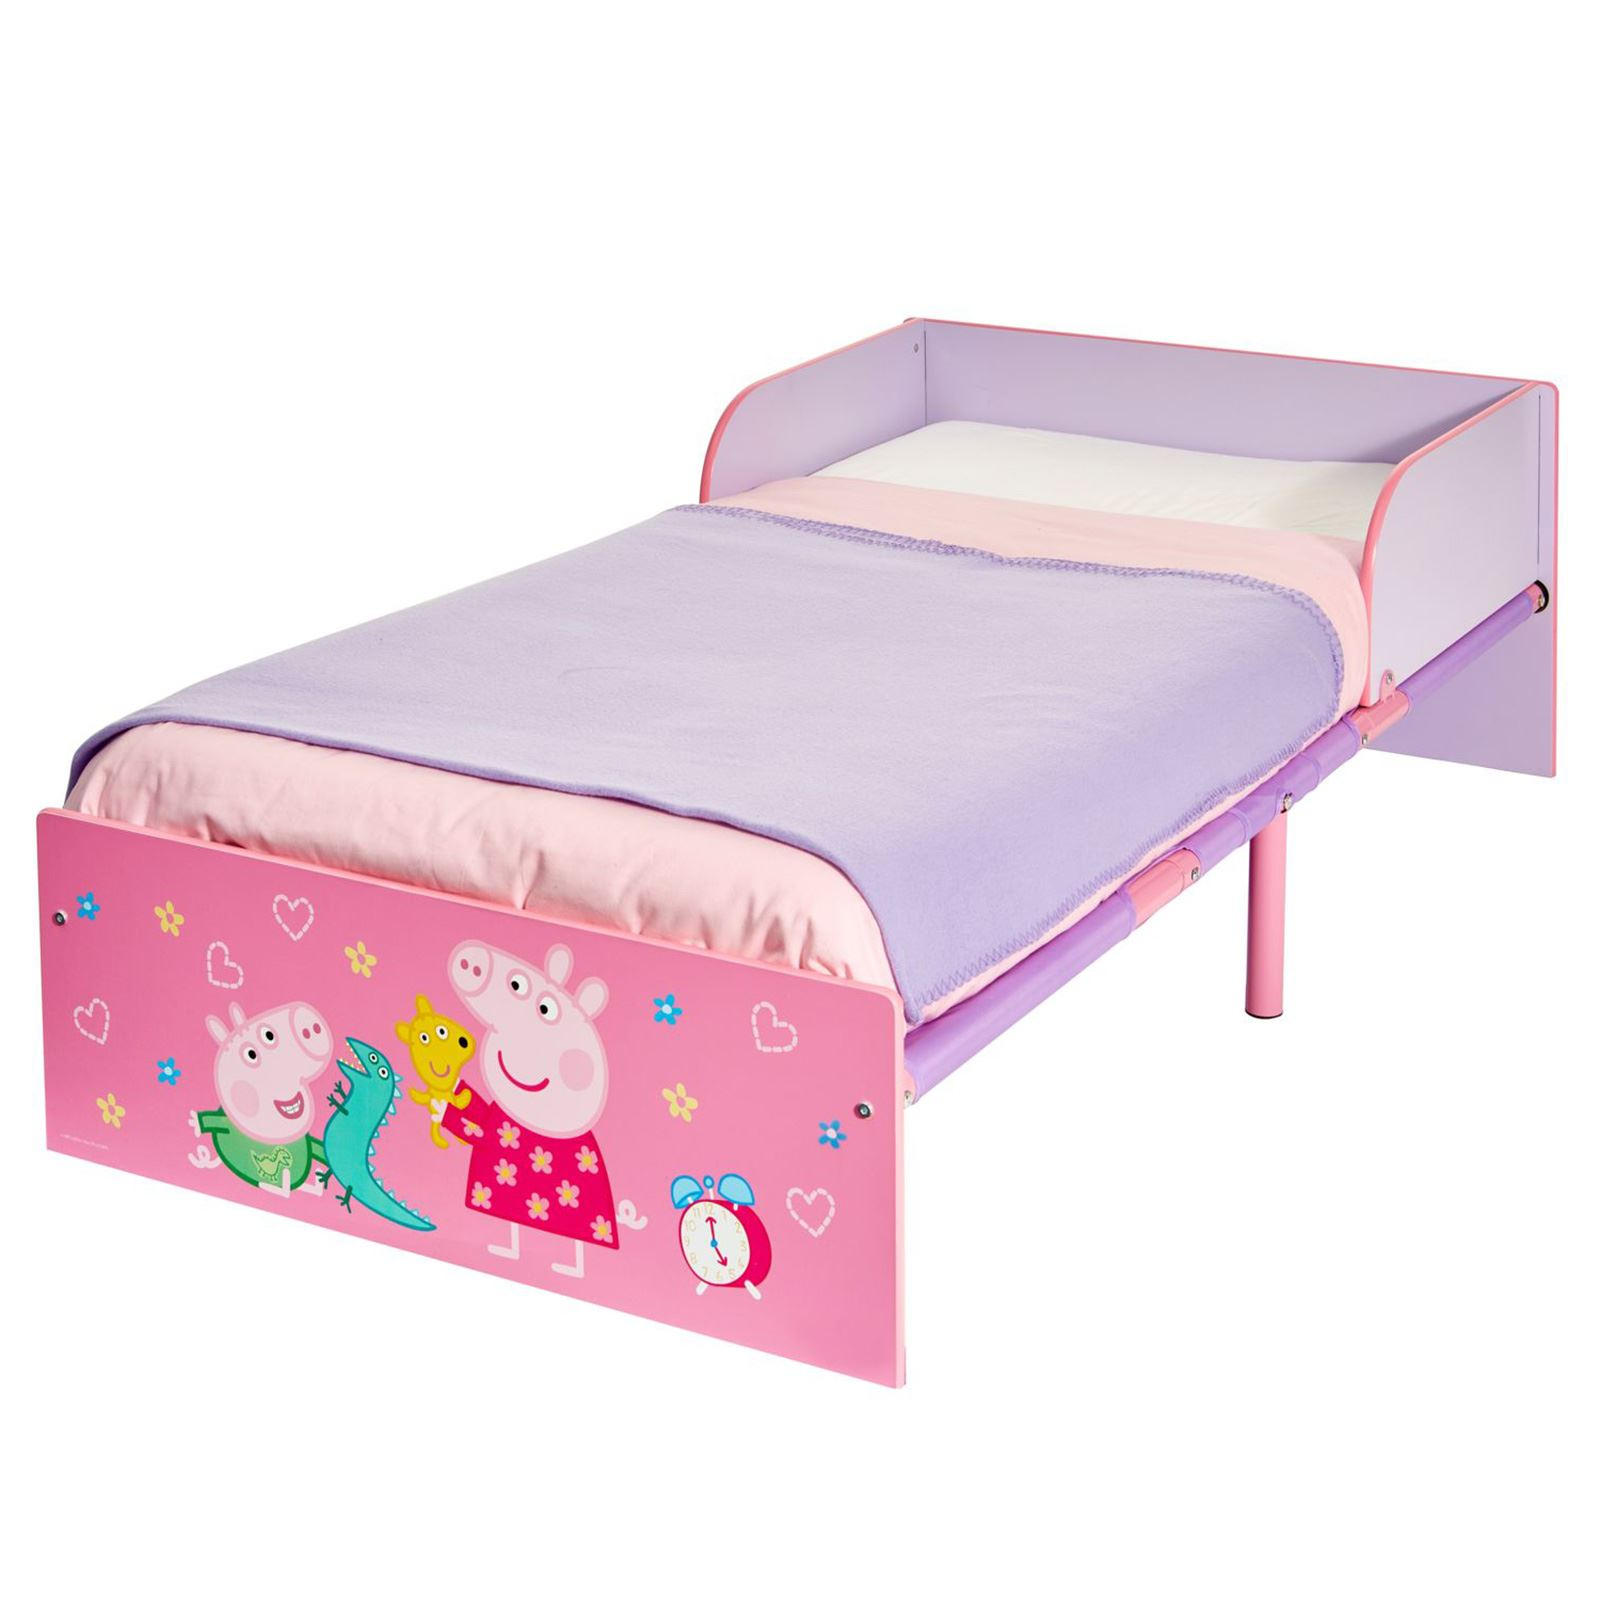 PEPPA PIG TODDLER BED WITH FULLY SPRUNG MATTRESS INCLUDED